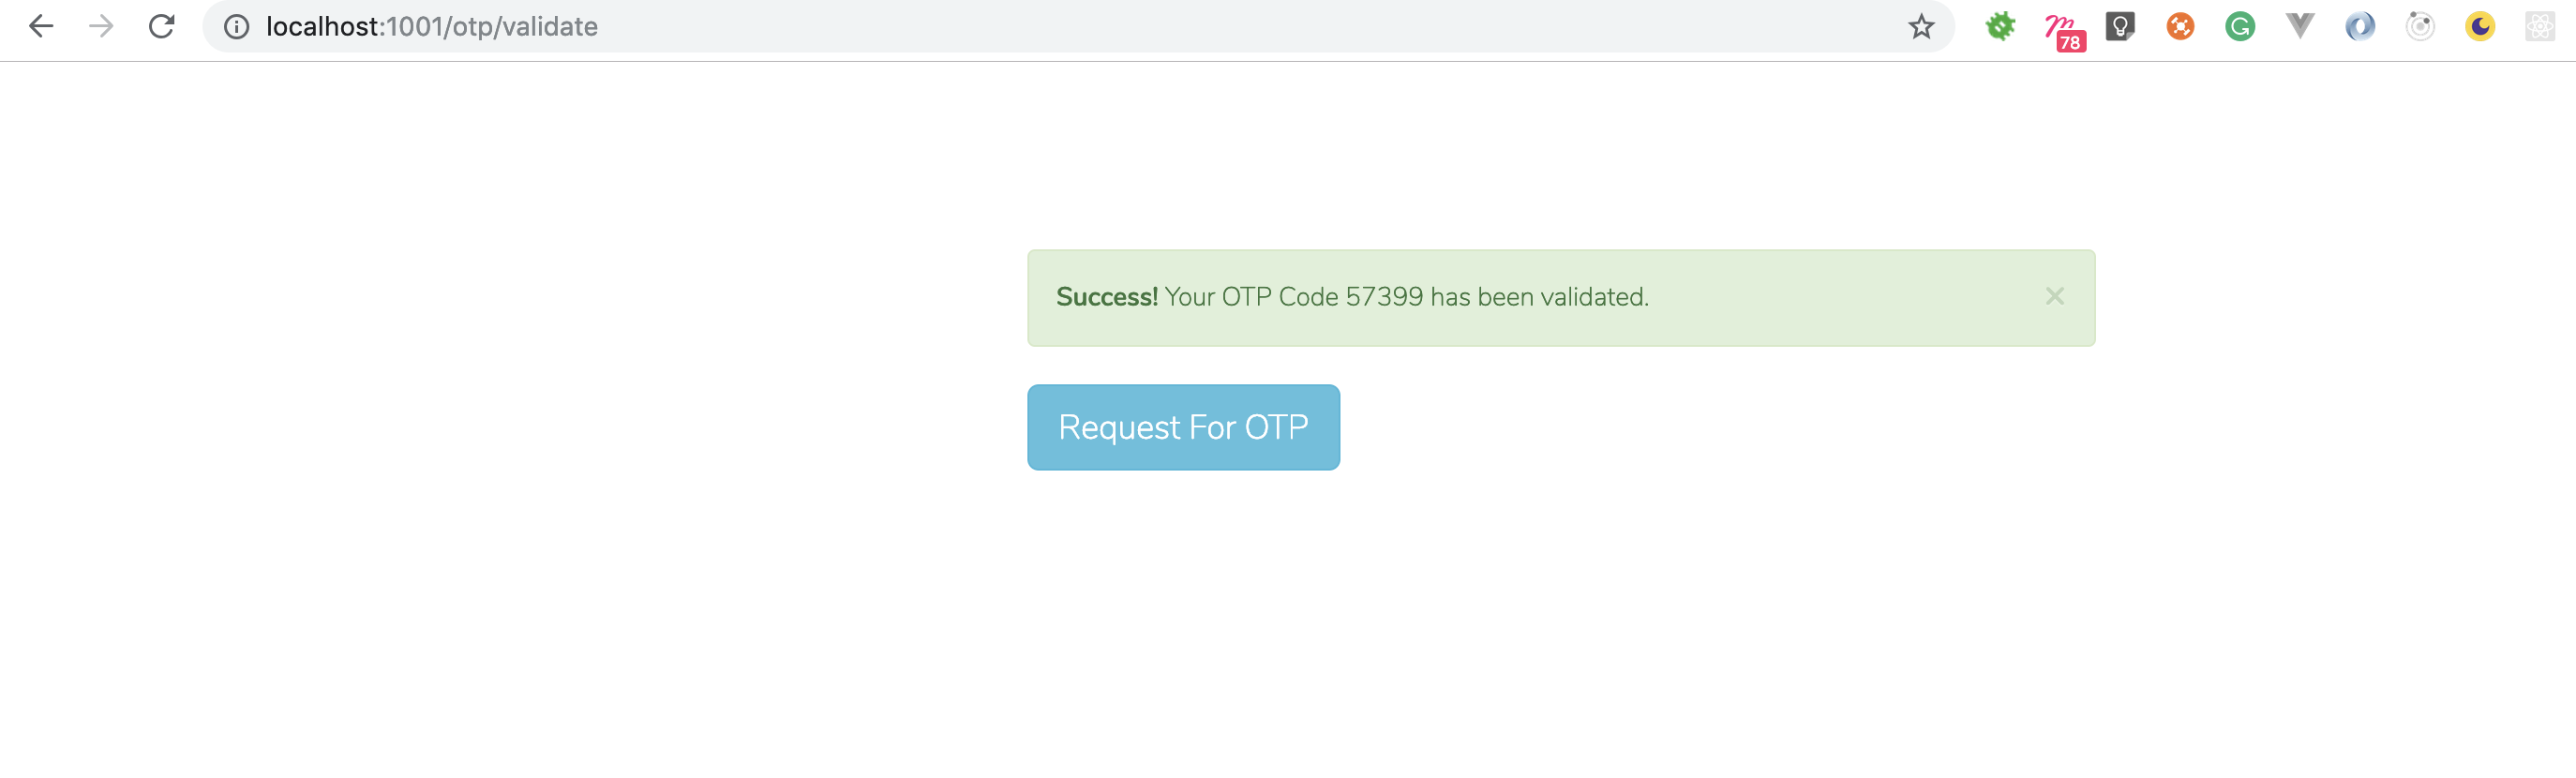 OTP Validation Success Page Image